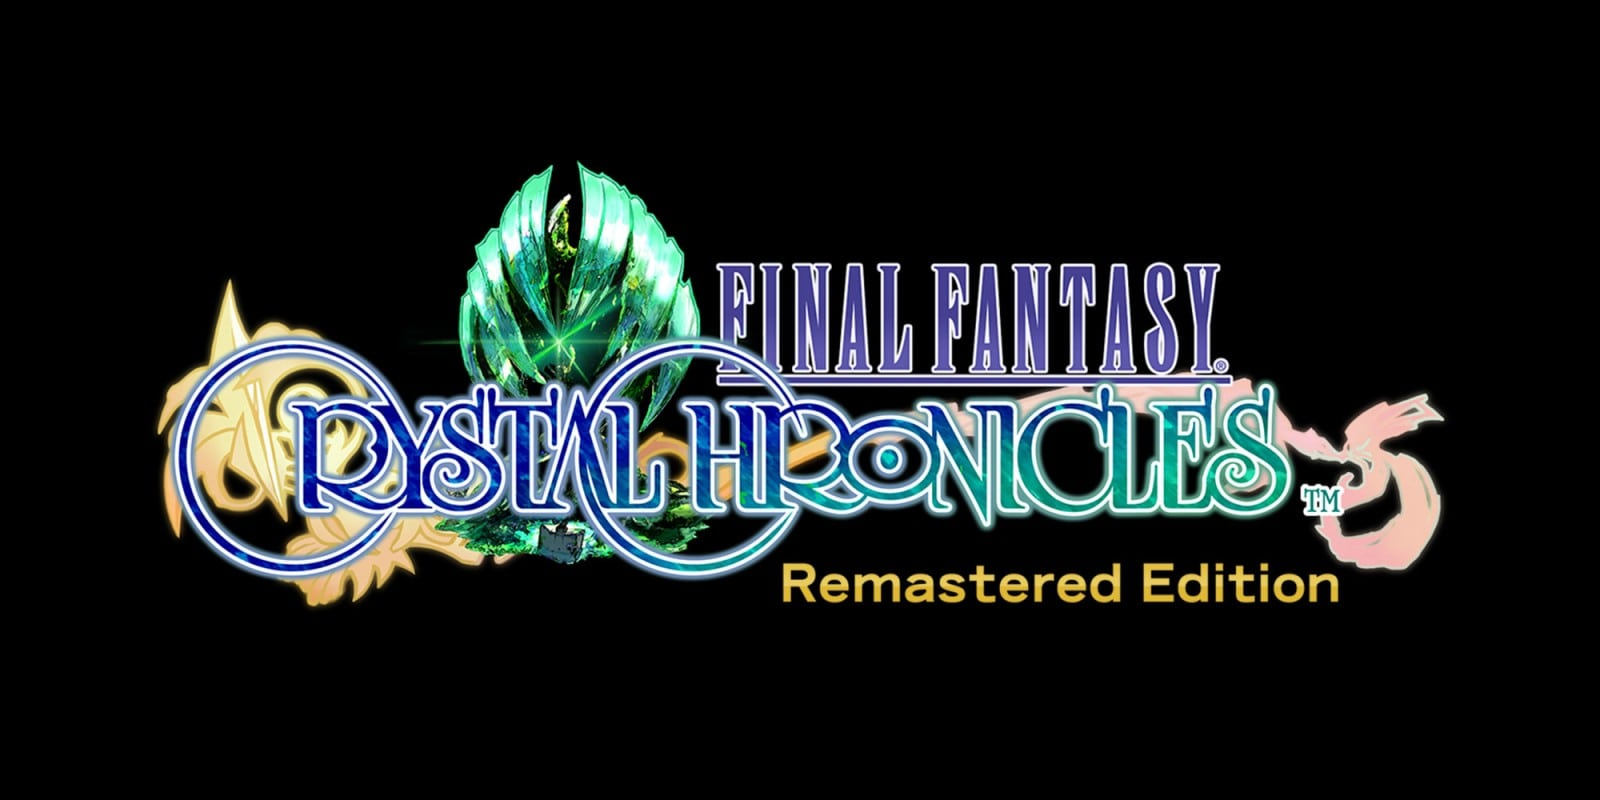 Final Fantasy Crystal Chronicles Remastered Edition выйдет в 2020 году